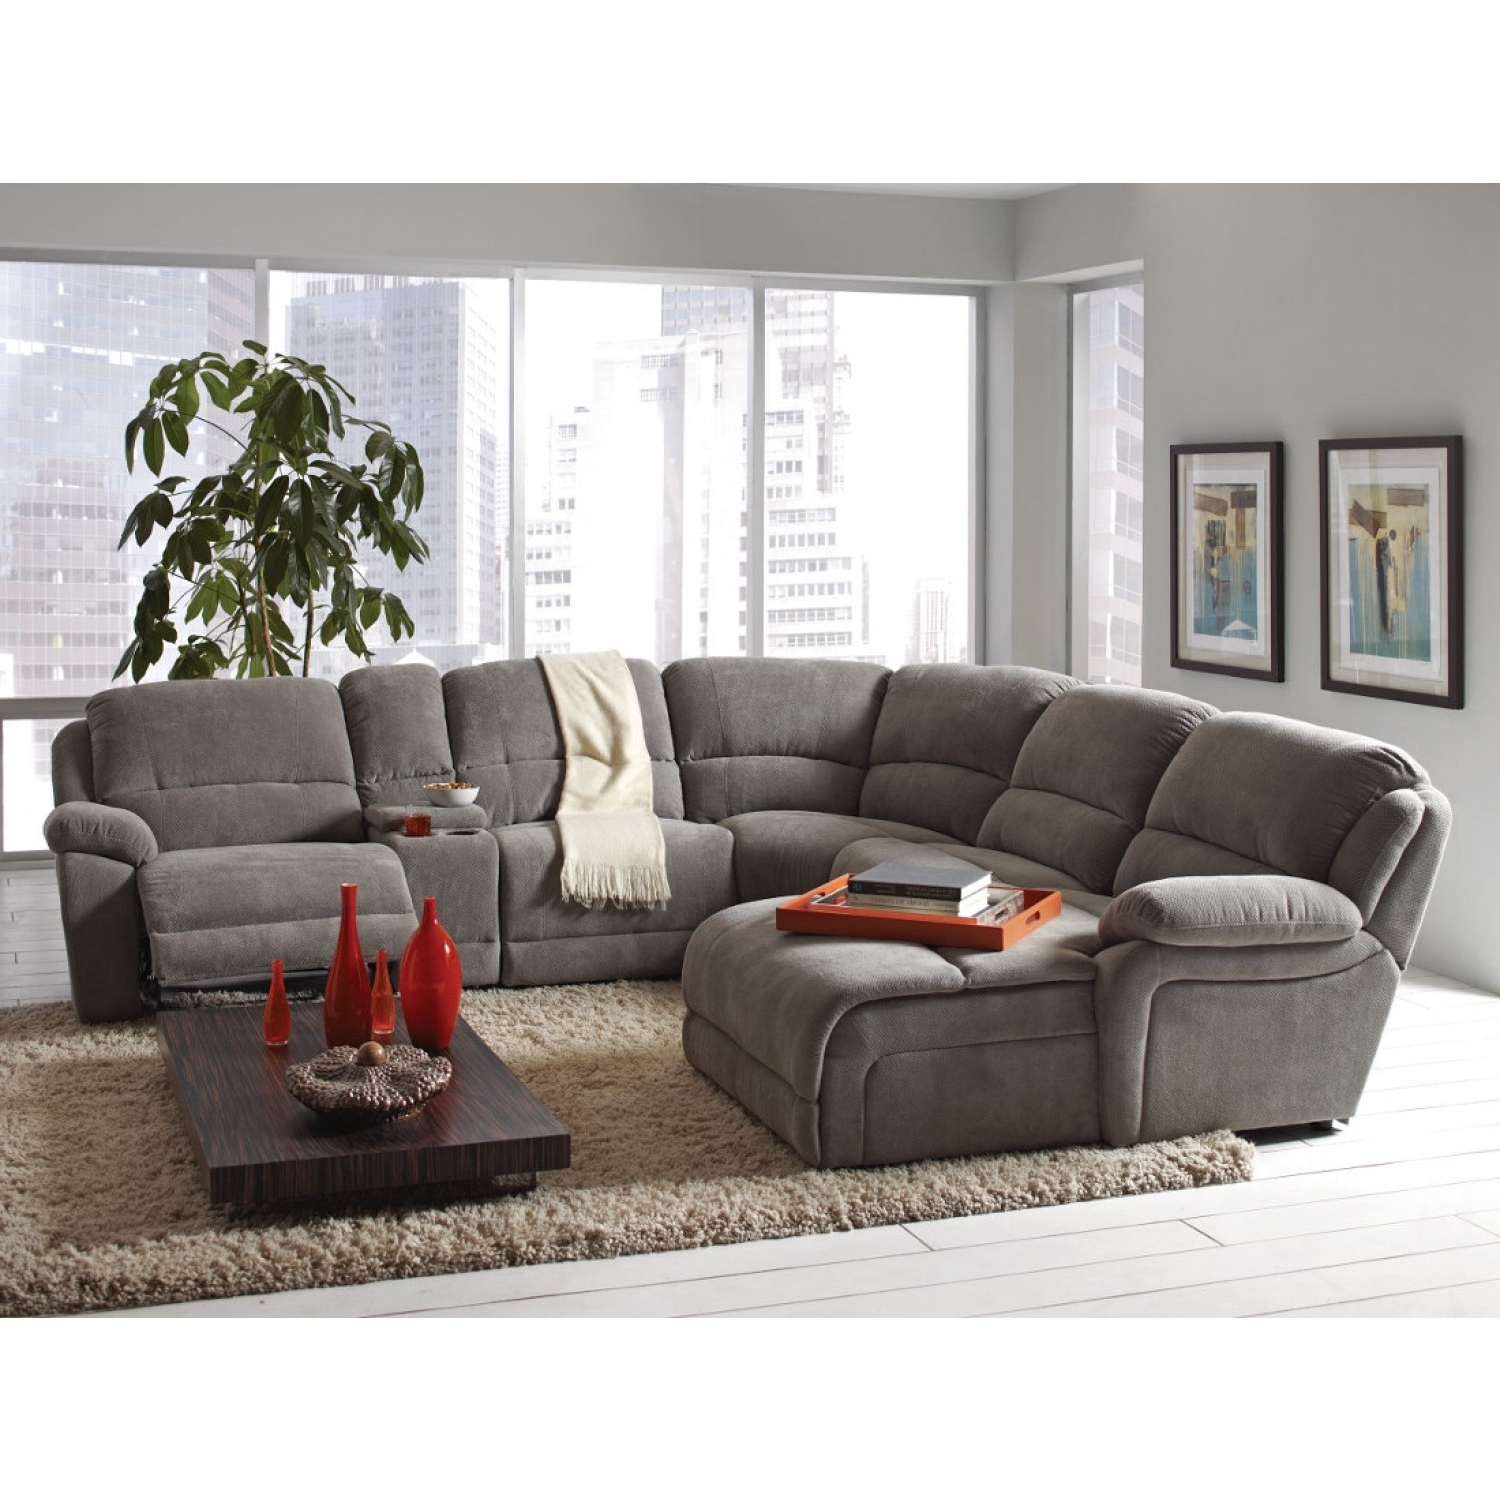 Most Recent Fabric Sectional Sofas Inside Coaster Mackenzie Silver 6 Piece Reclining Sectional Sofa With (View 19 of 20)